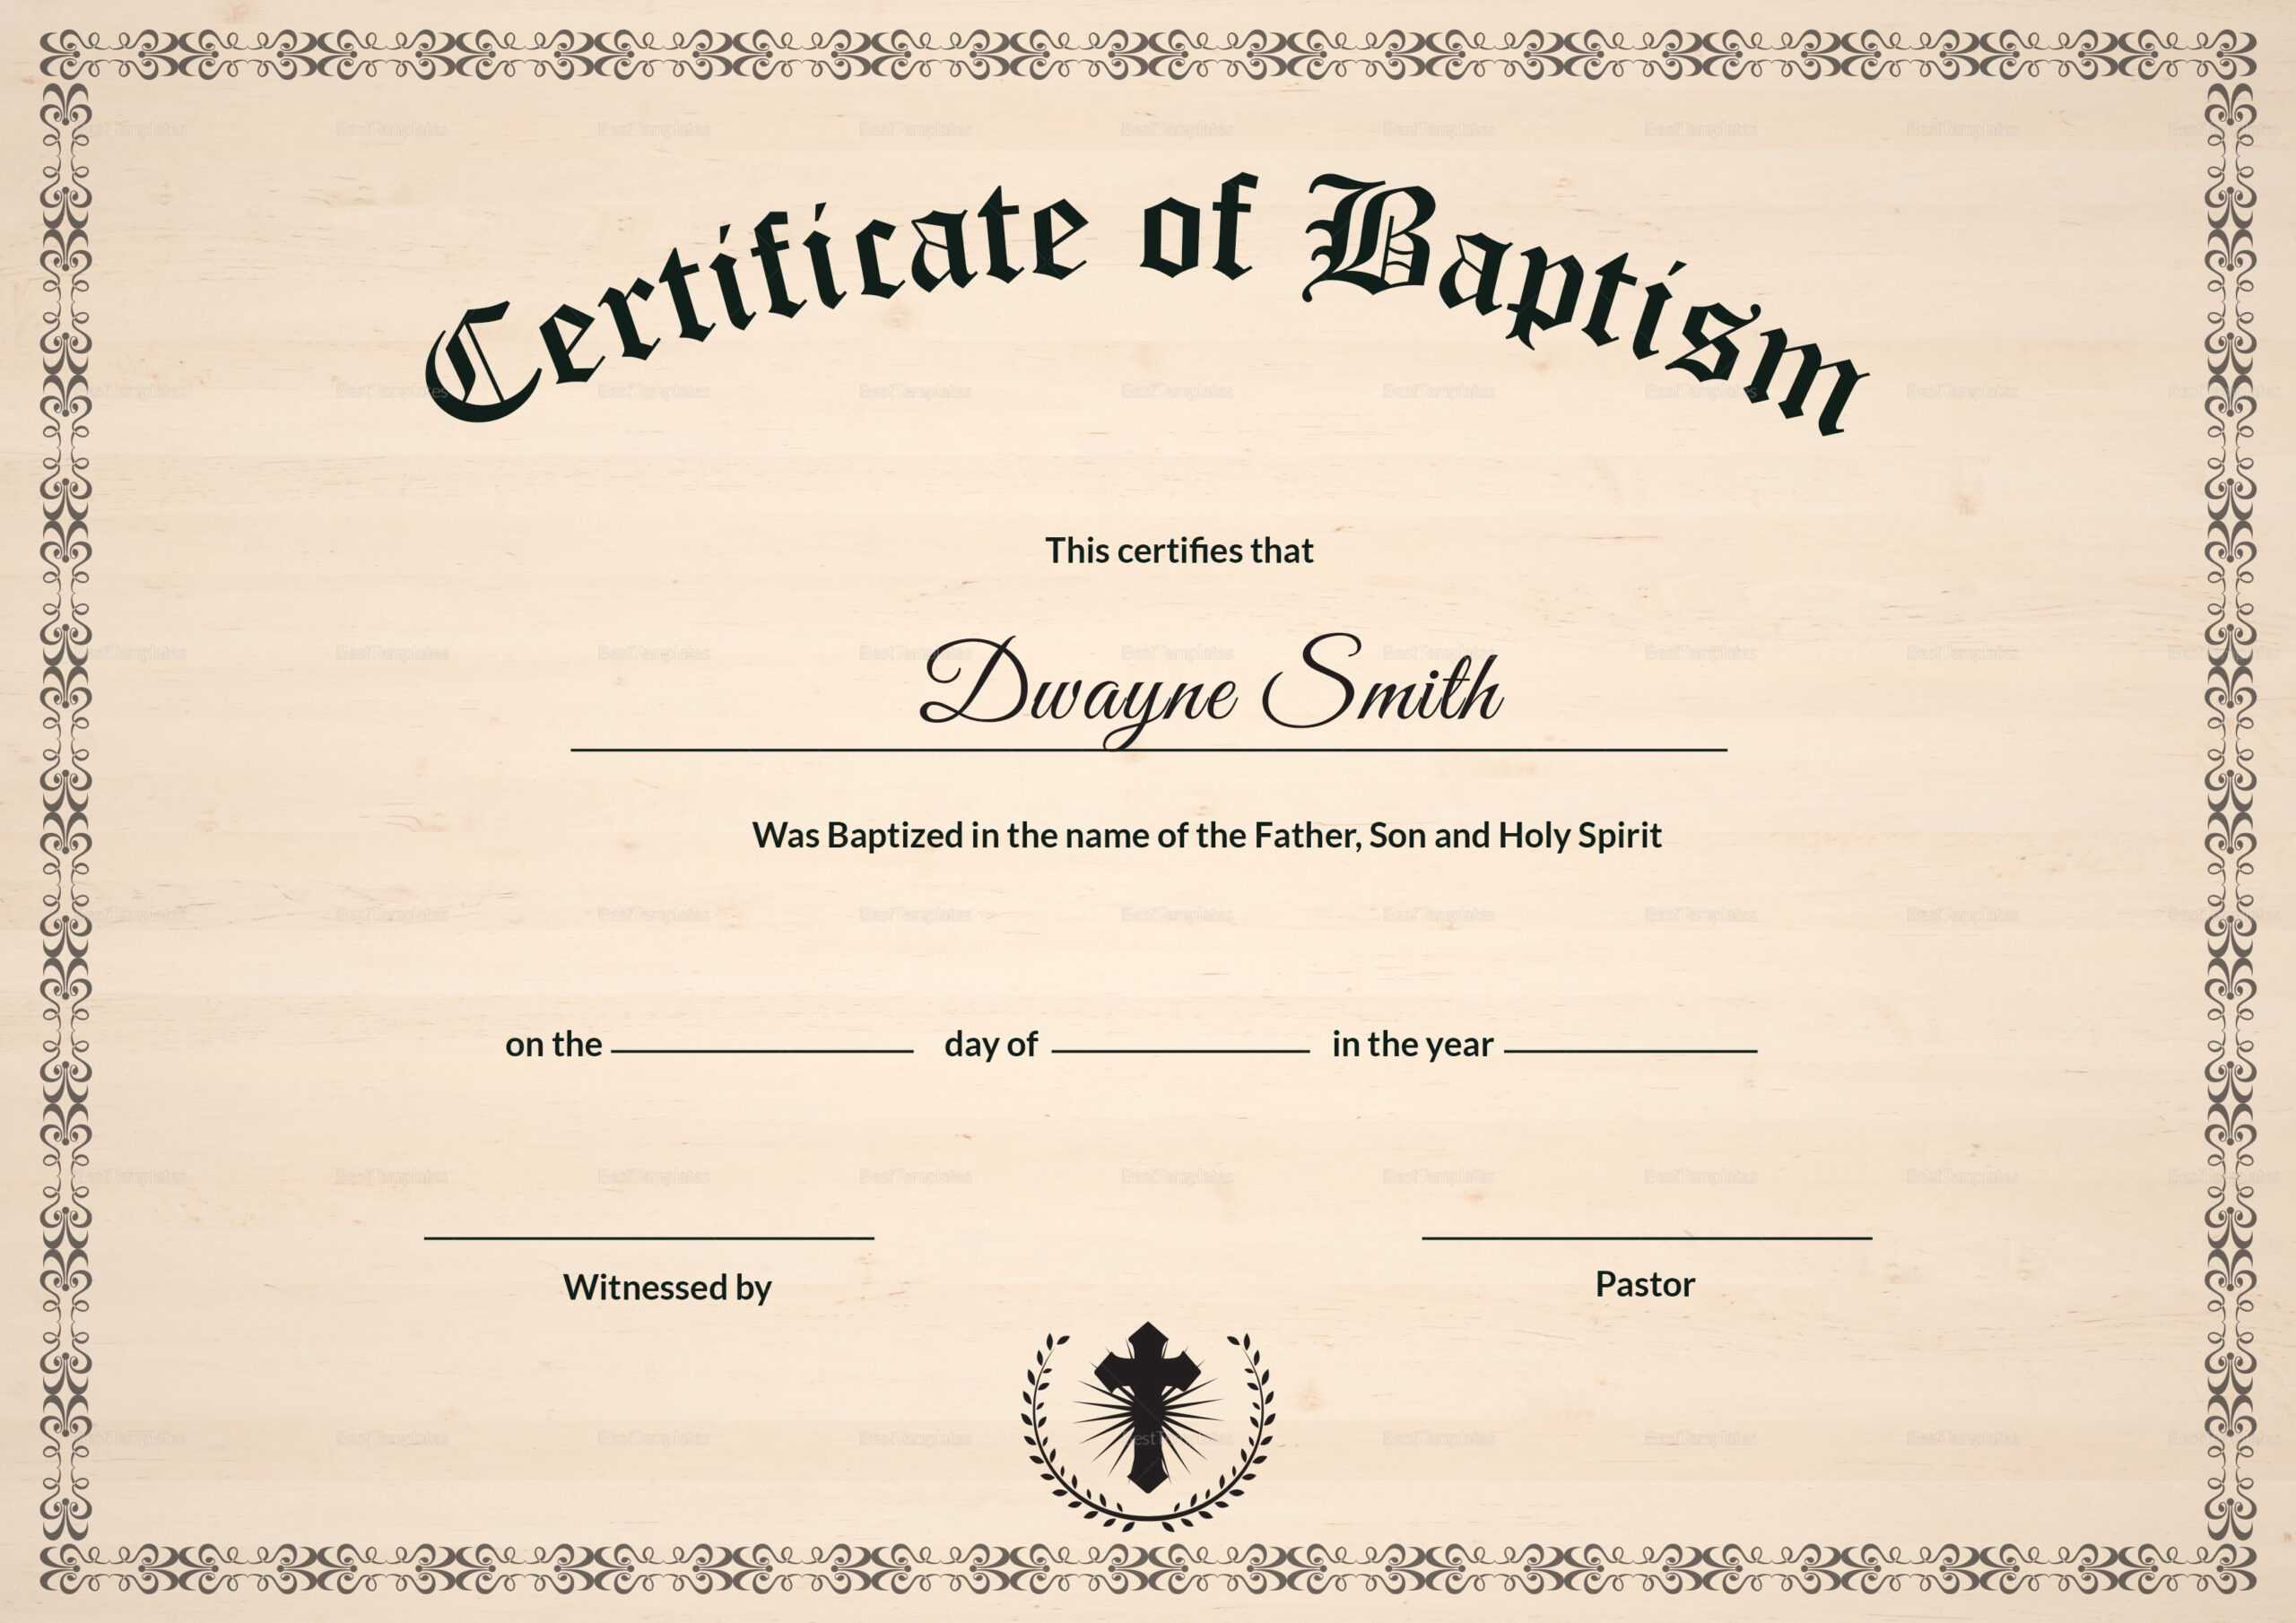 Baptism Certificate Template | Filej | Certificate Templates Inside Baptism Certificate Template Download